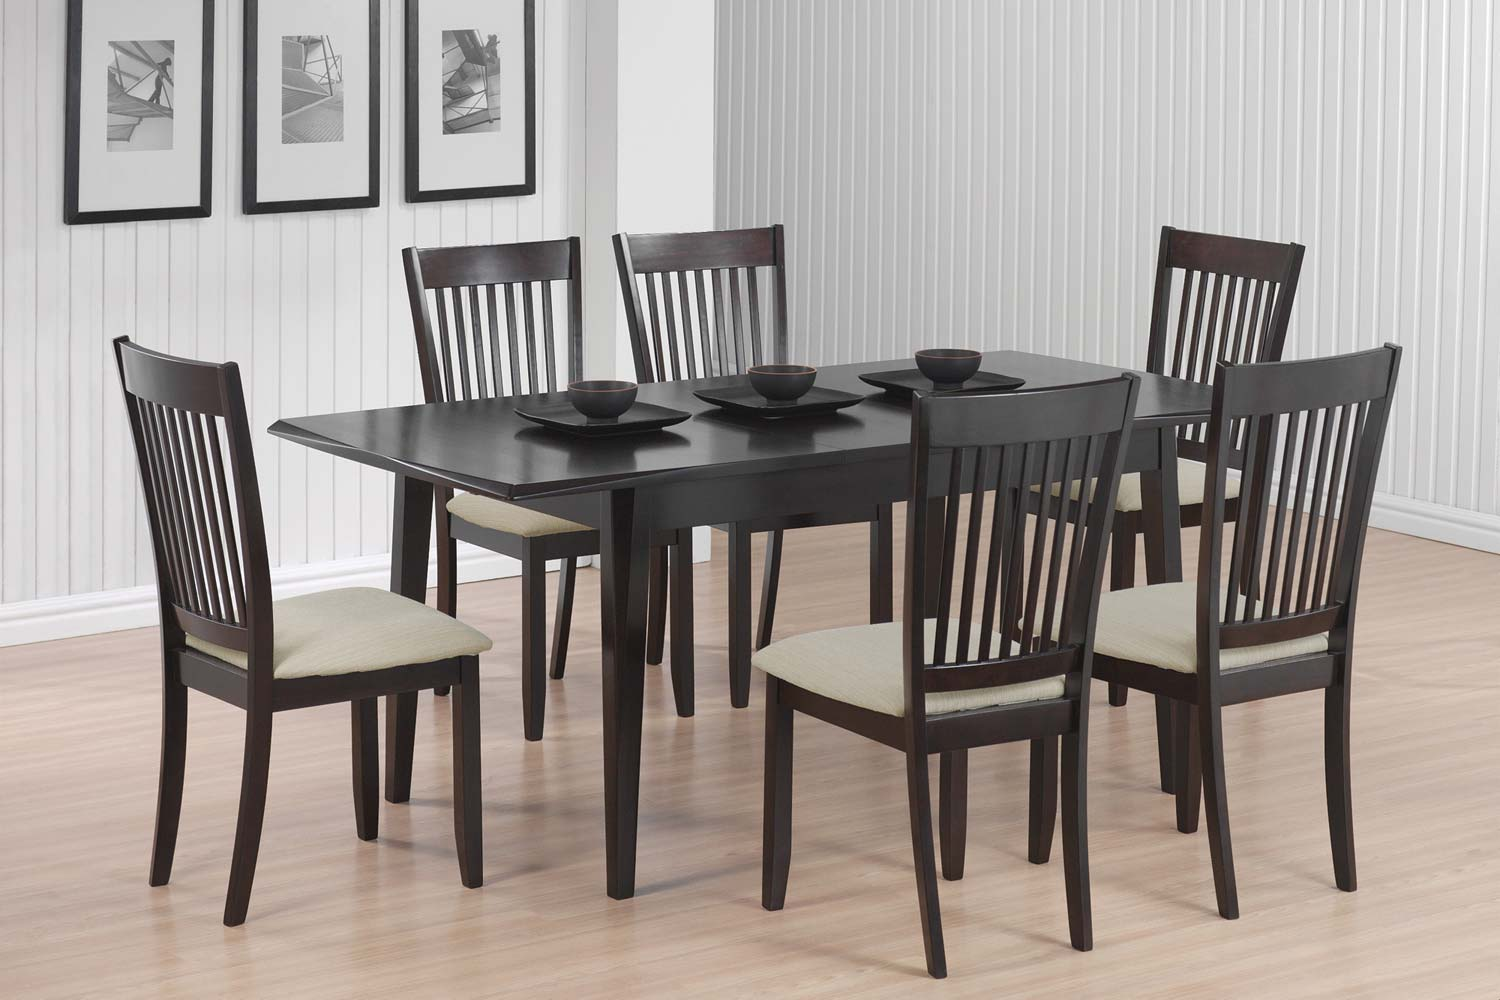 Coaster 103721 Dining Set - Cappuccino